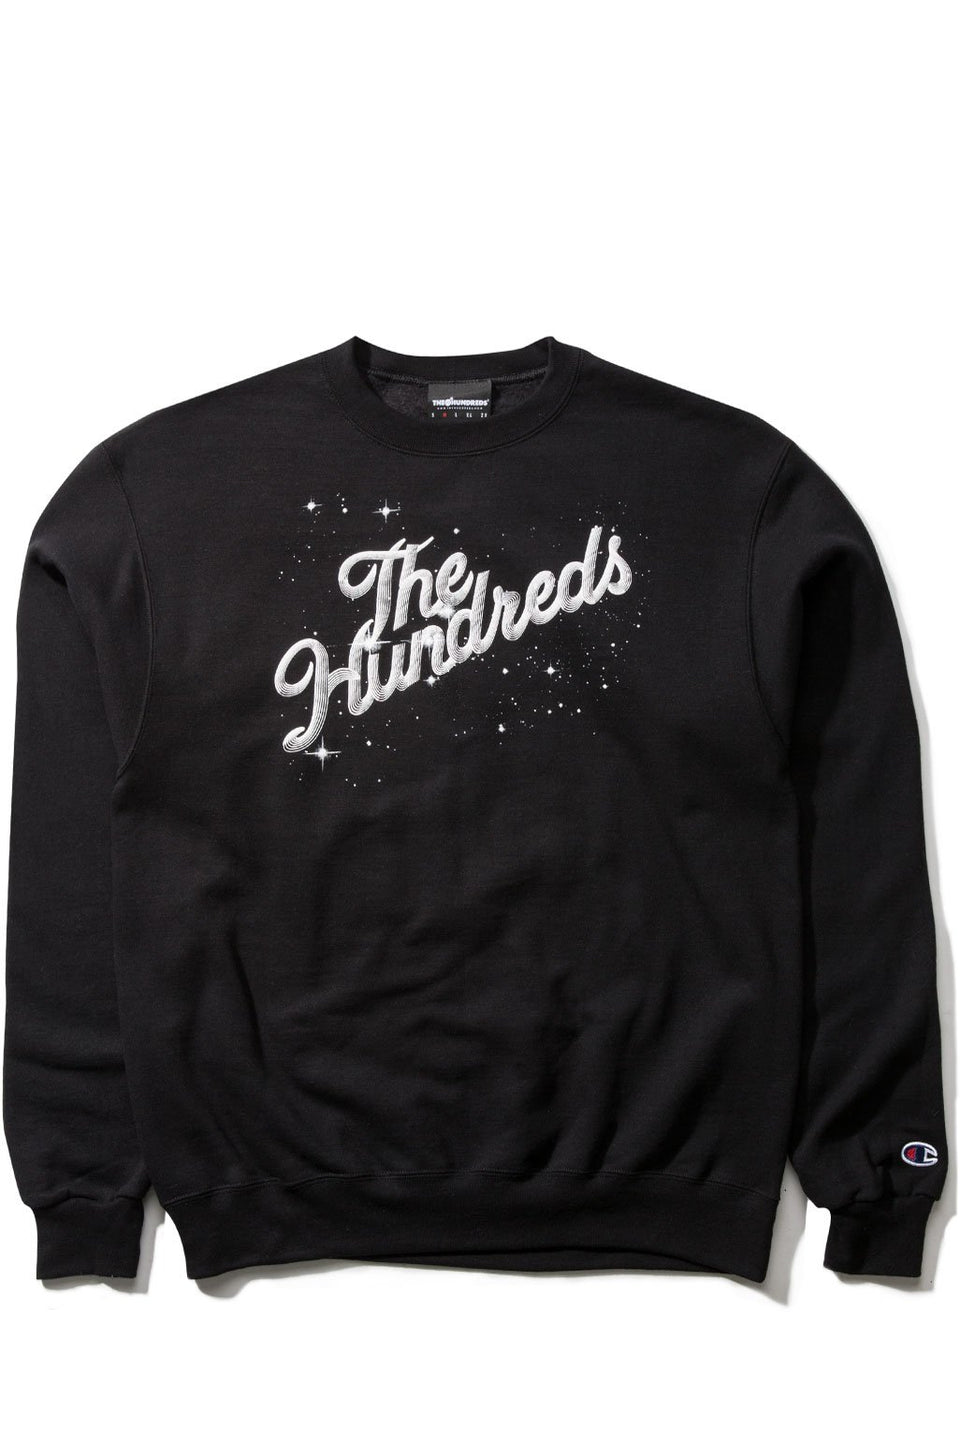 Search Slant Crewneck